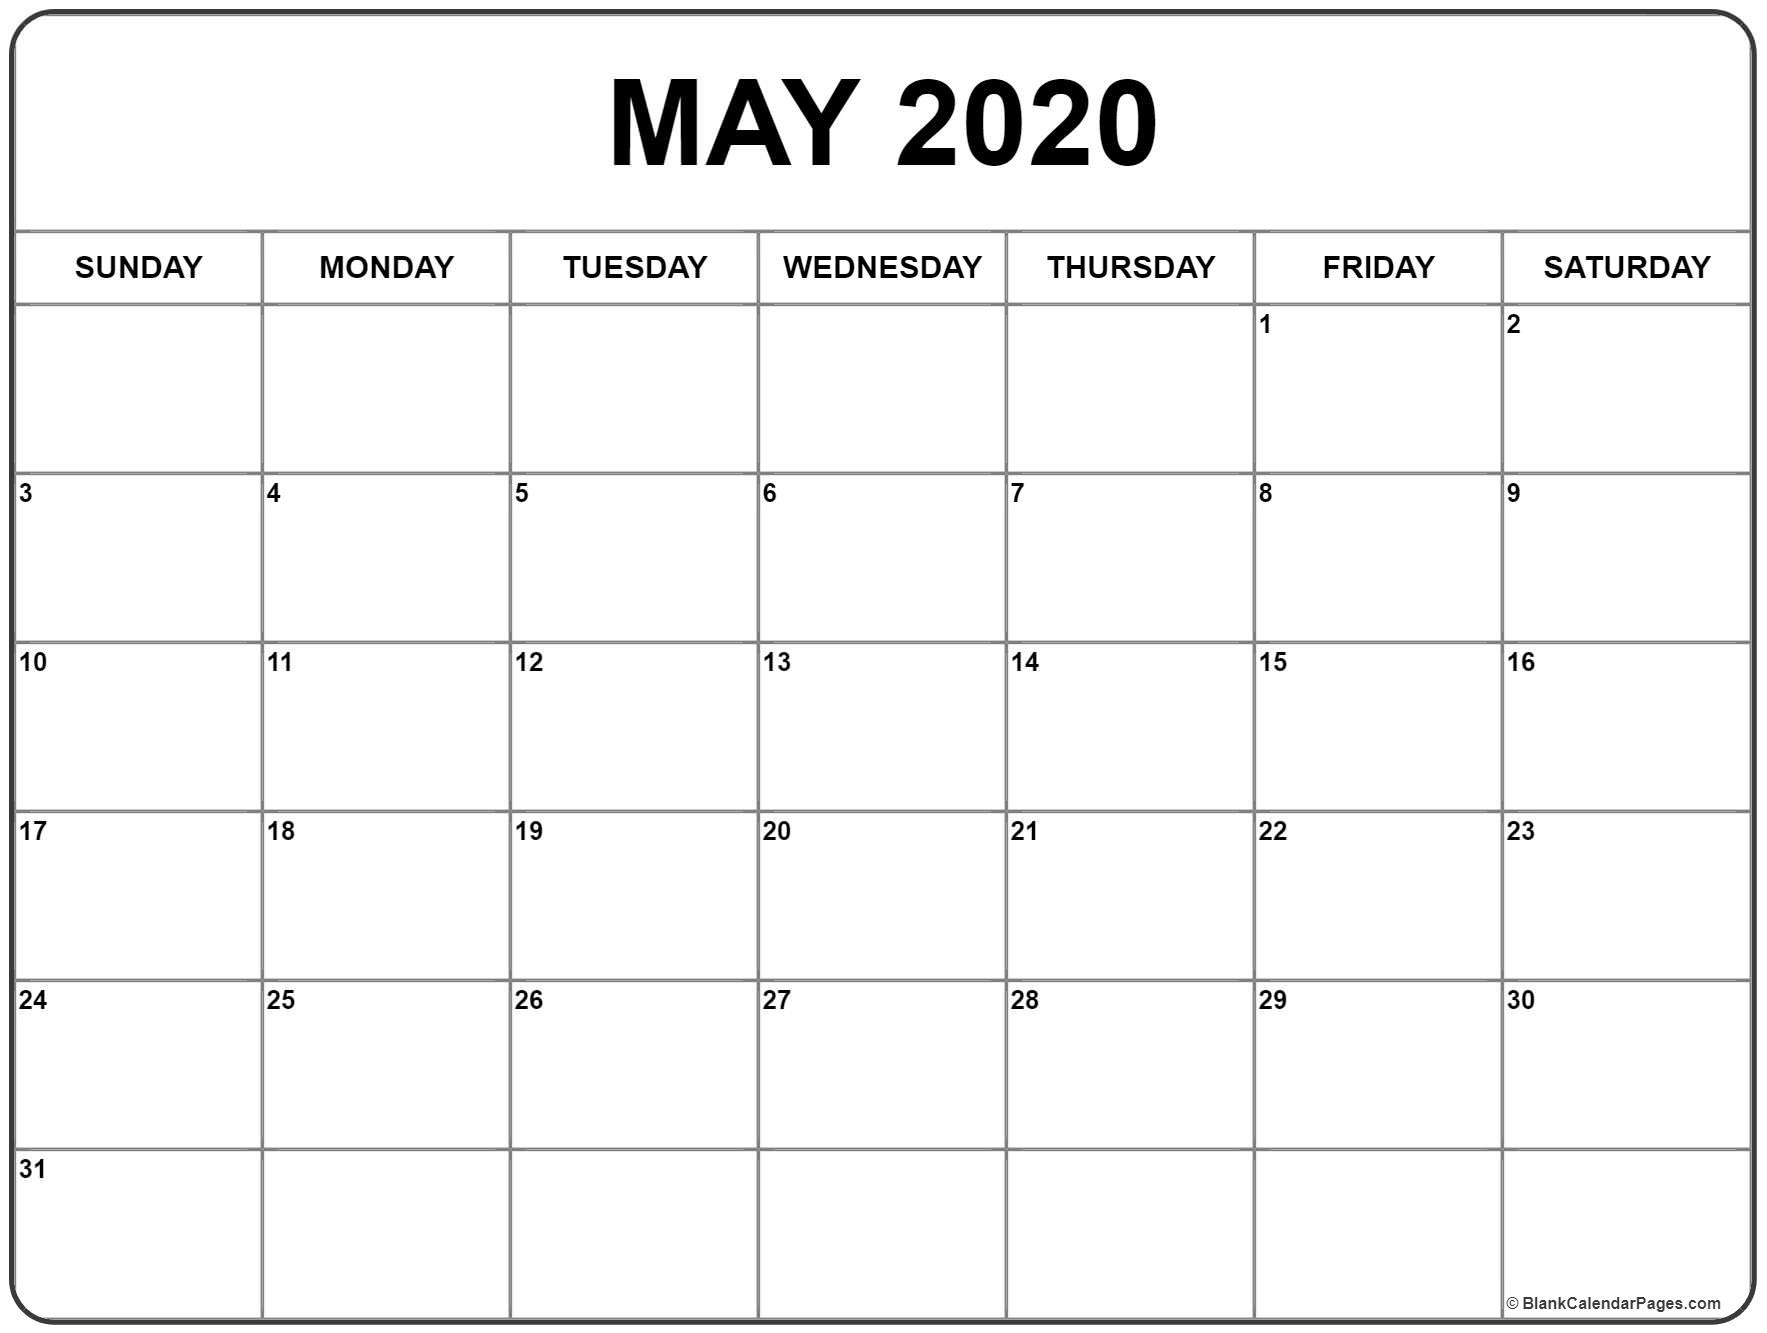 May 2020 Calendar | Free Printable Monthly Calendars  Printable Calendar 2020